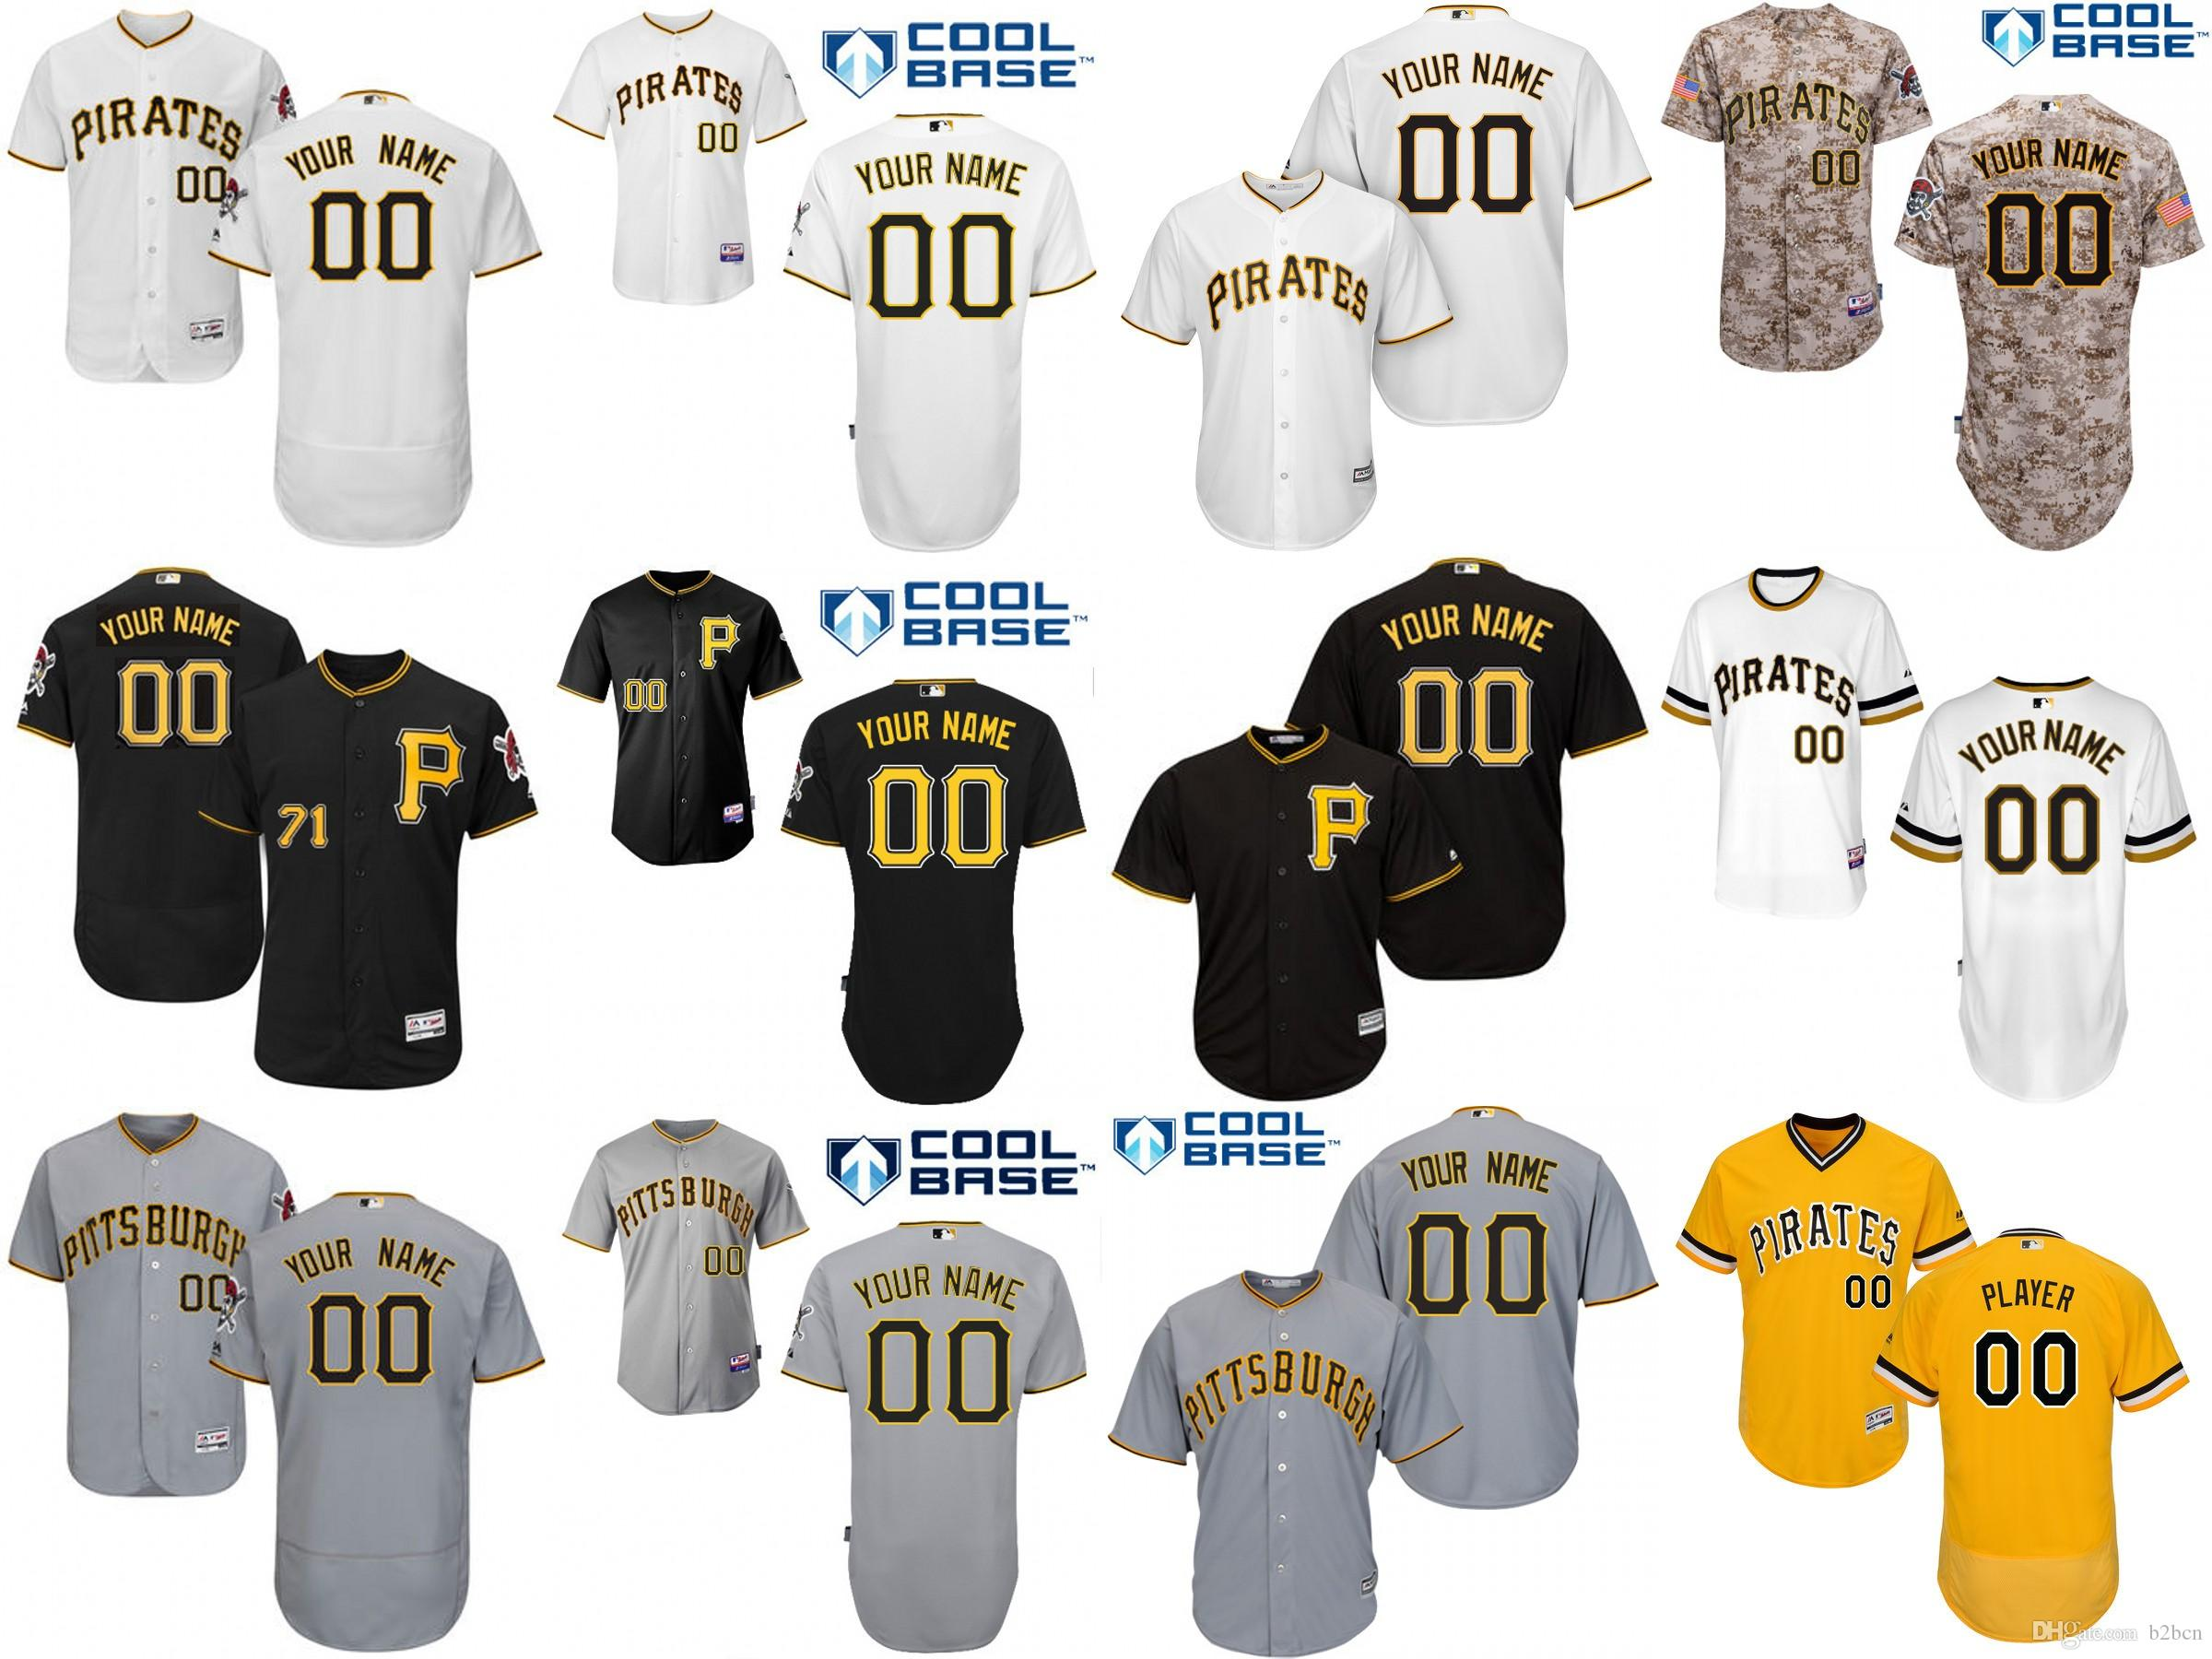 2016 Flexbase Custom Hommes Pittsburgh Pirates base fraîche Authentique Collecti